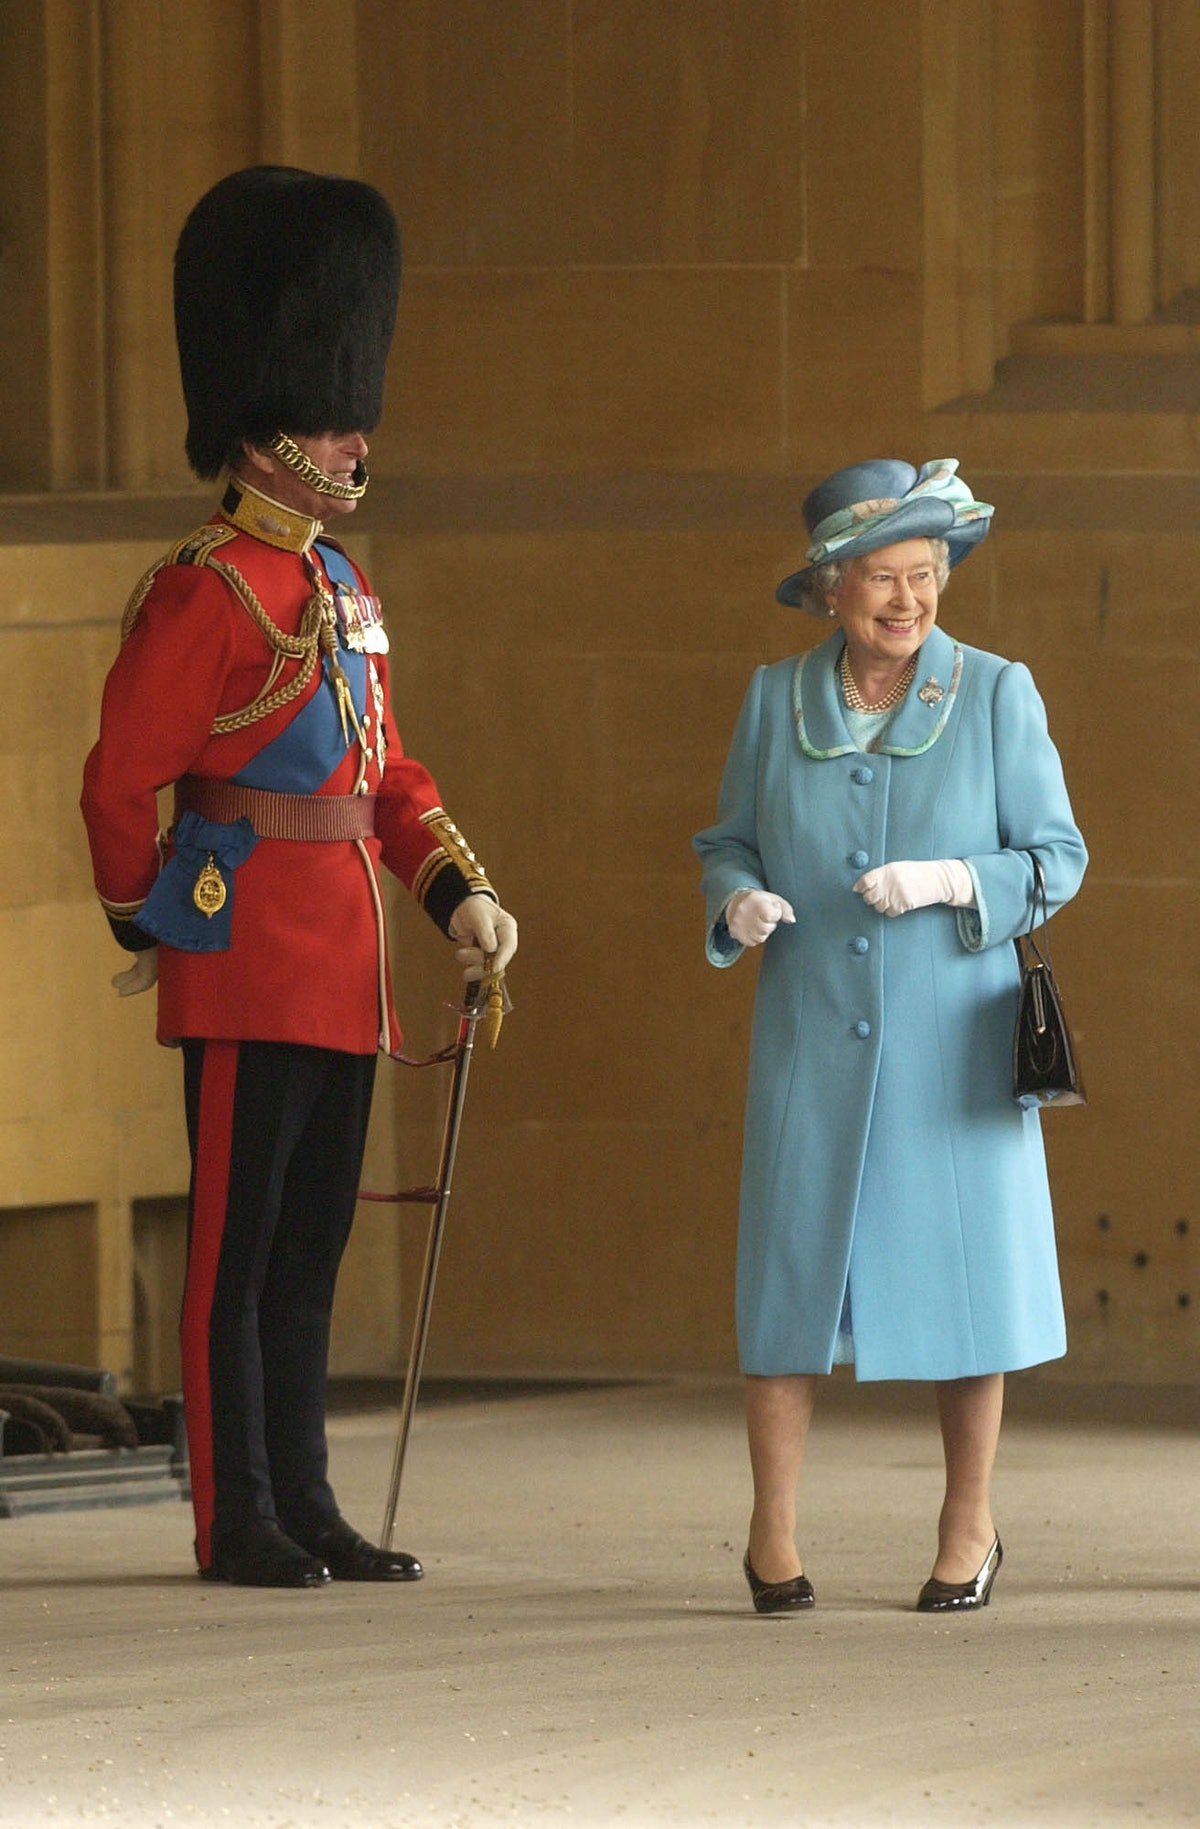 Queen Elizabeth II and Prince Philip enjoy the spectacle, as a swarm of bees cause concern prior to ...